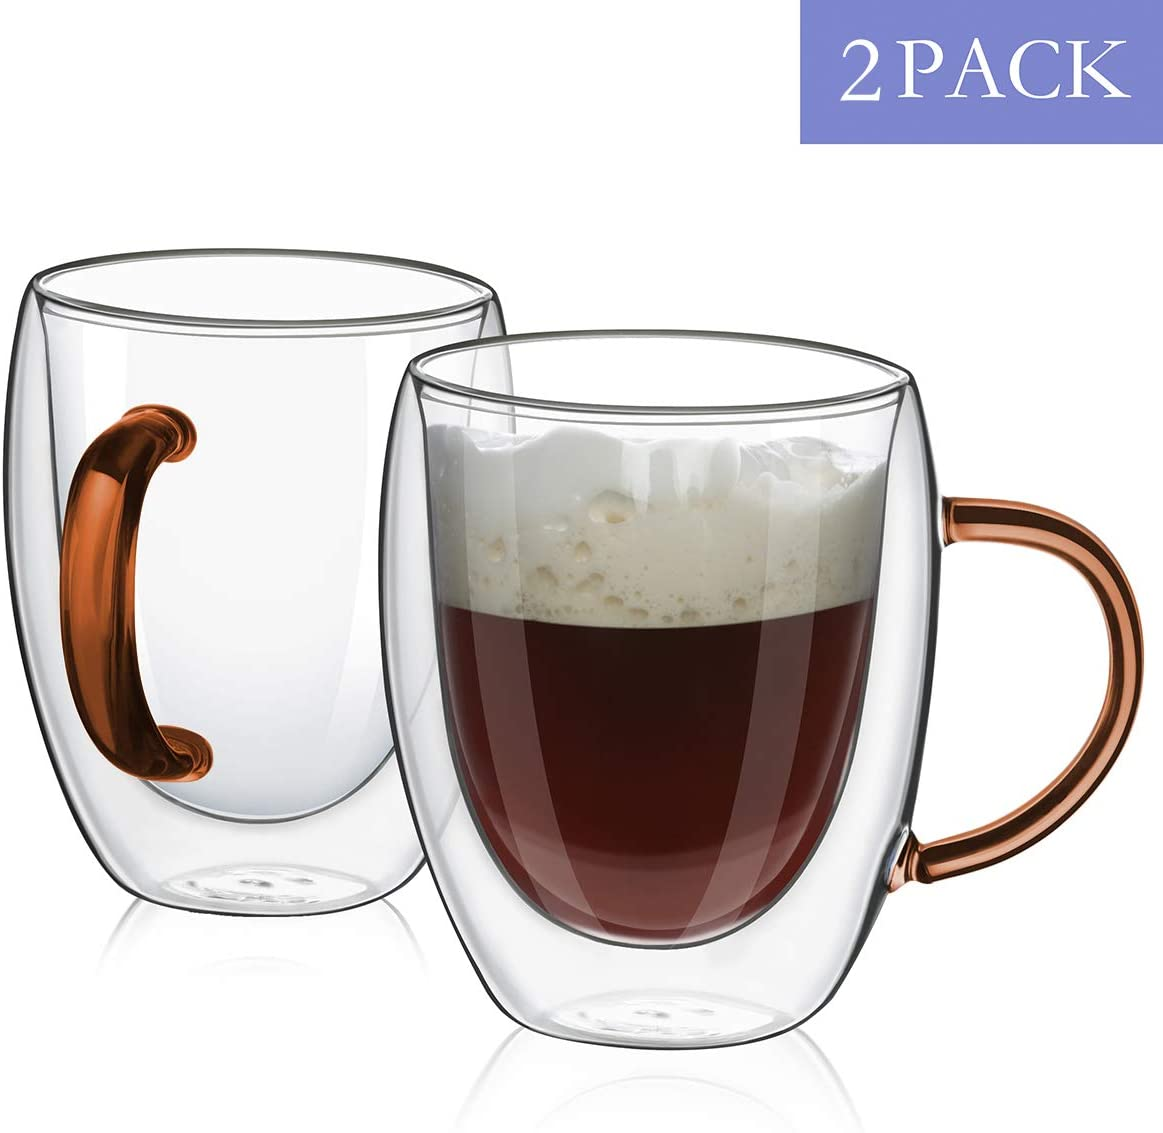 MEWAY 12oz Coffee Mugs, Set of 2, Clear Glass Double Wall Cup with color handle for Coffee, Tea, Latte, Cappuccino (Amber, 2)